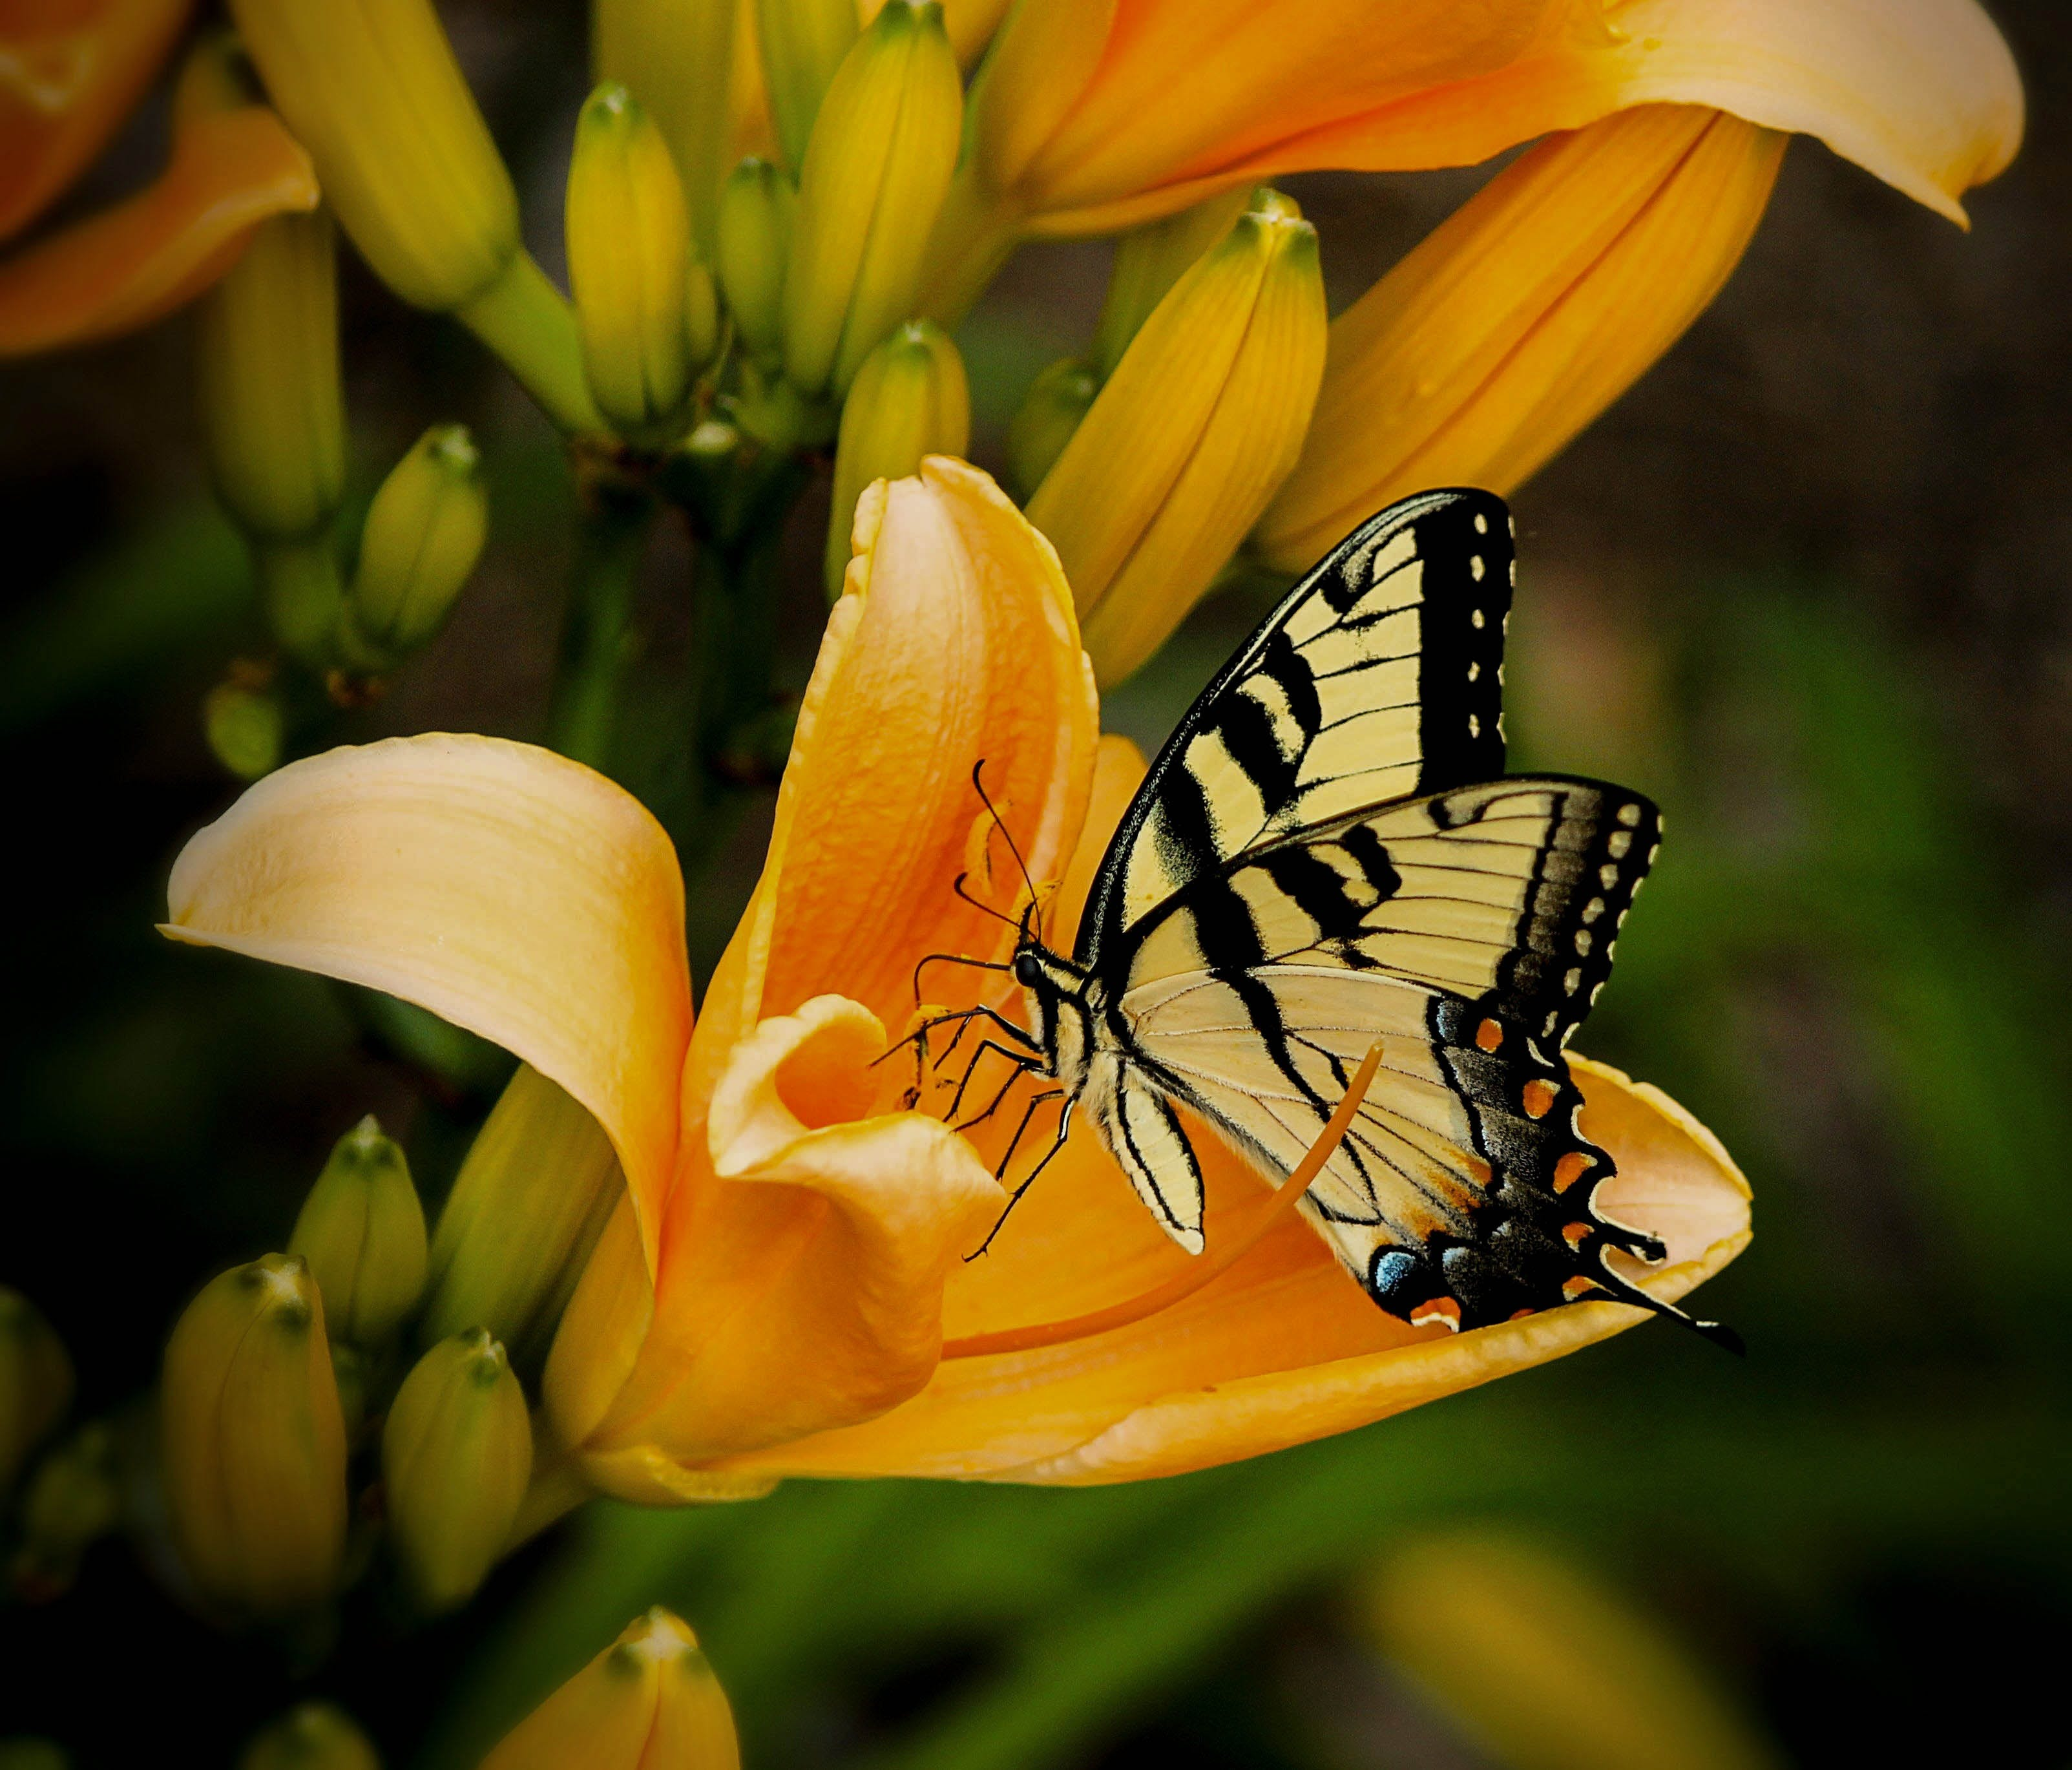 Black and White Butterfly Perch on Yellow Petaled Flower